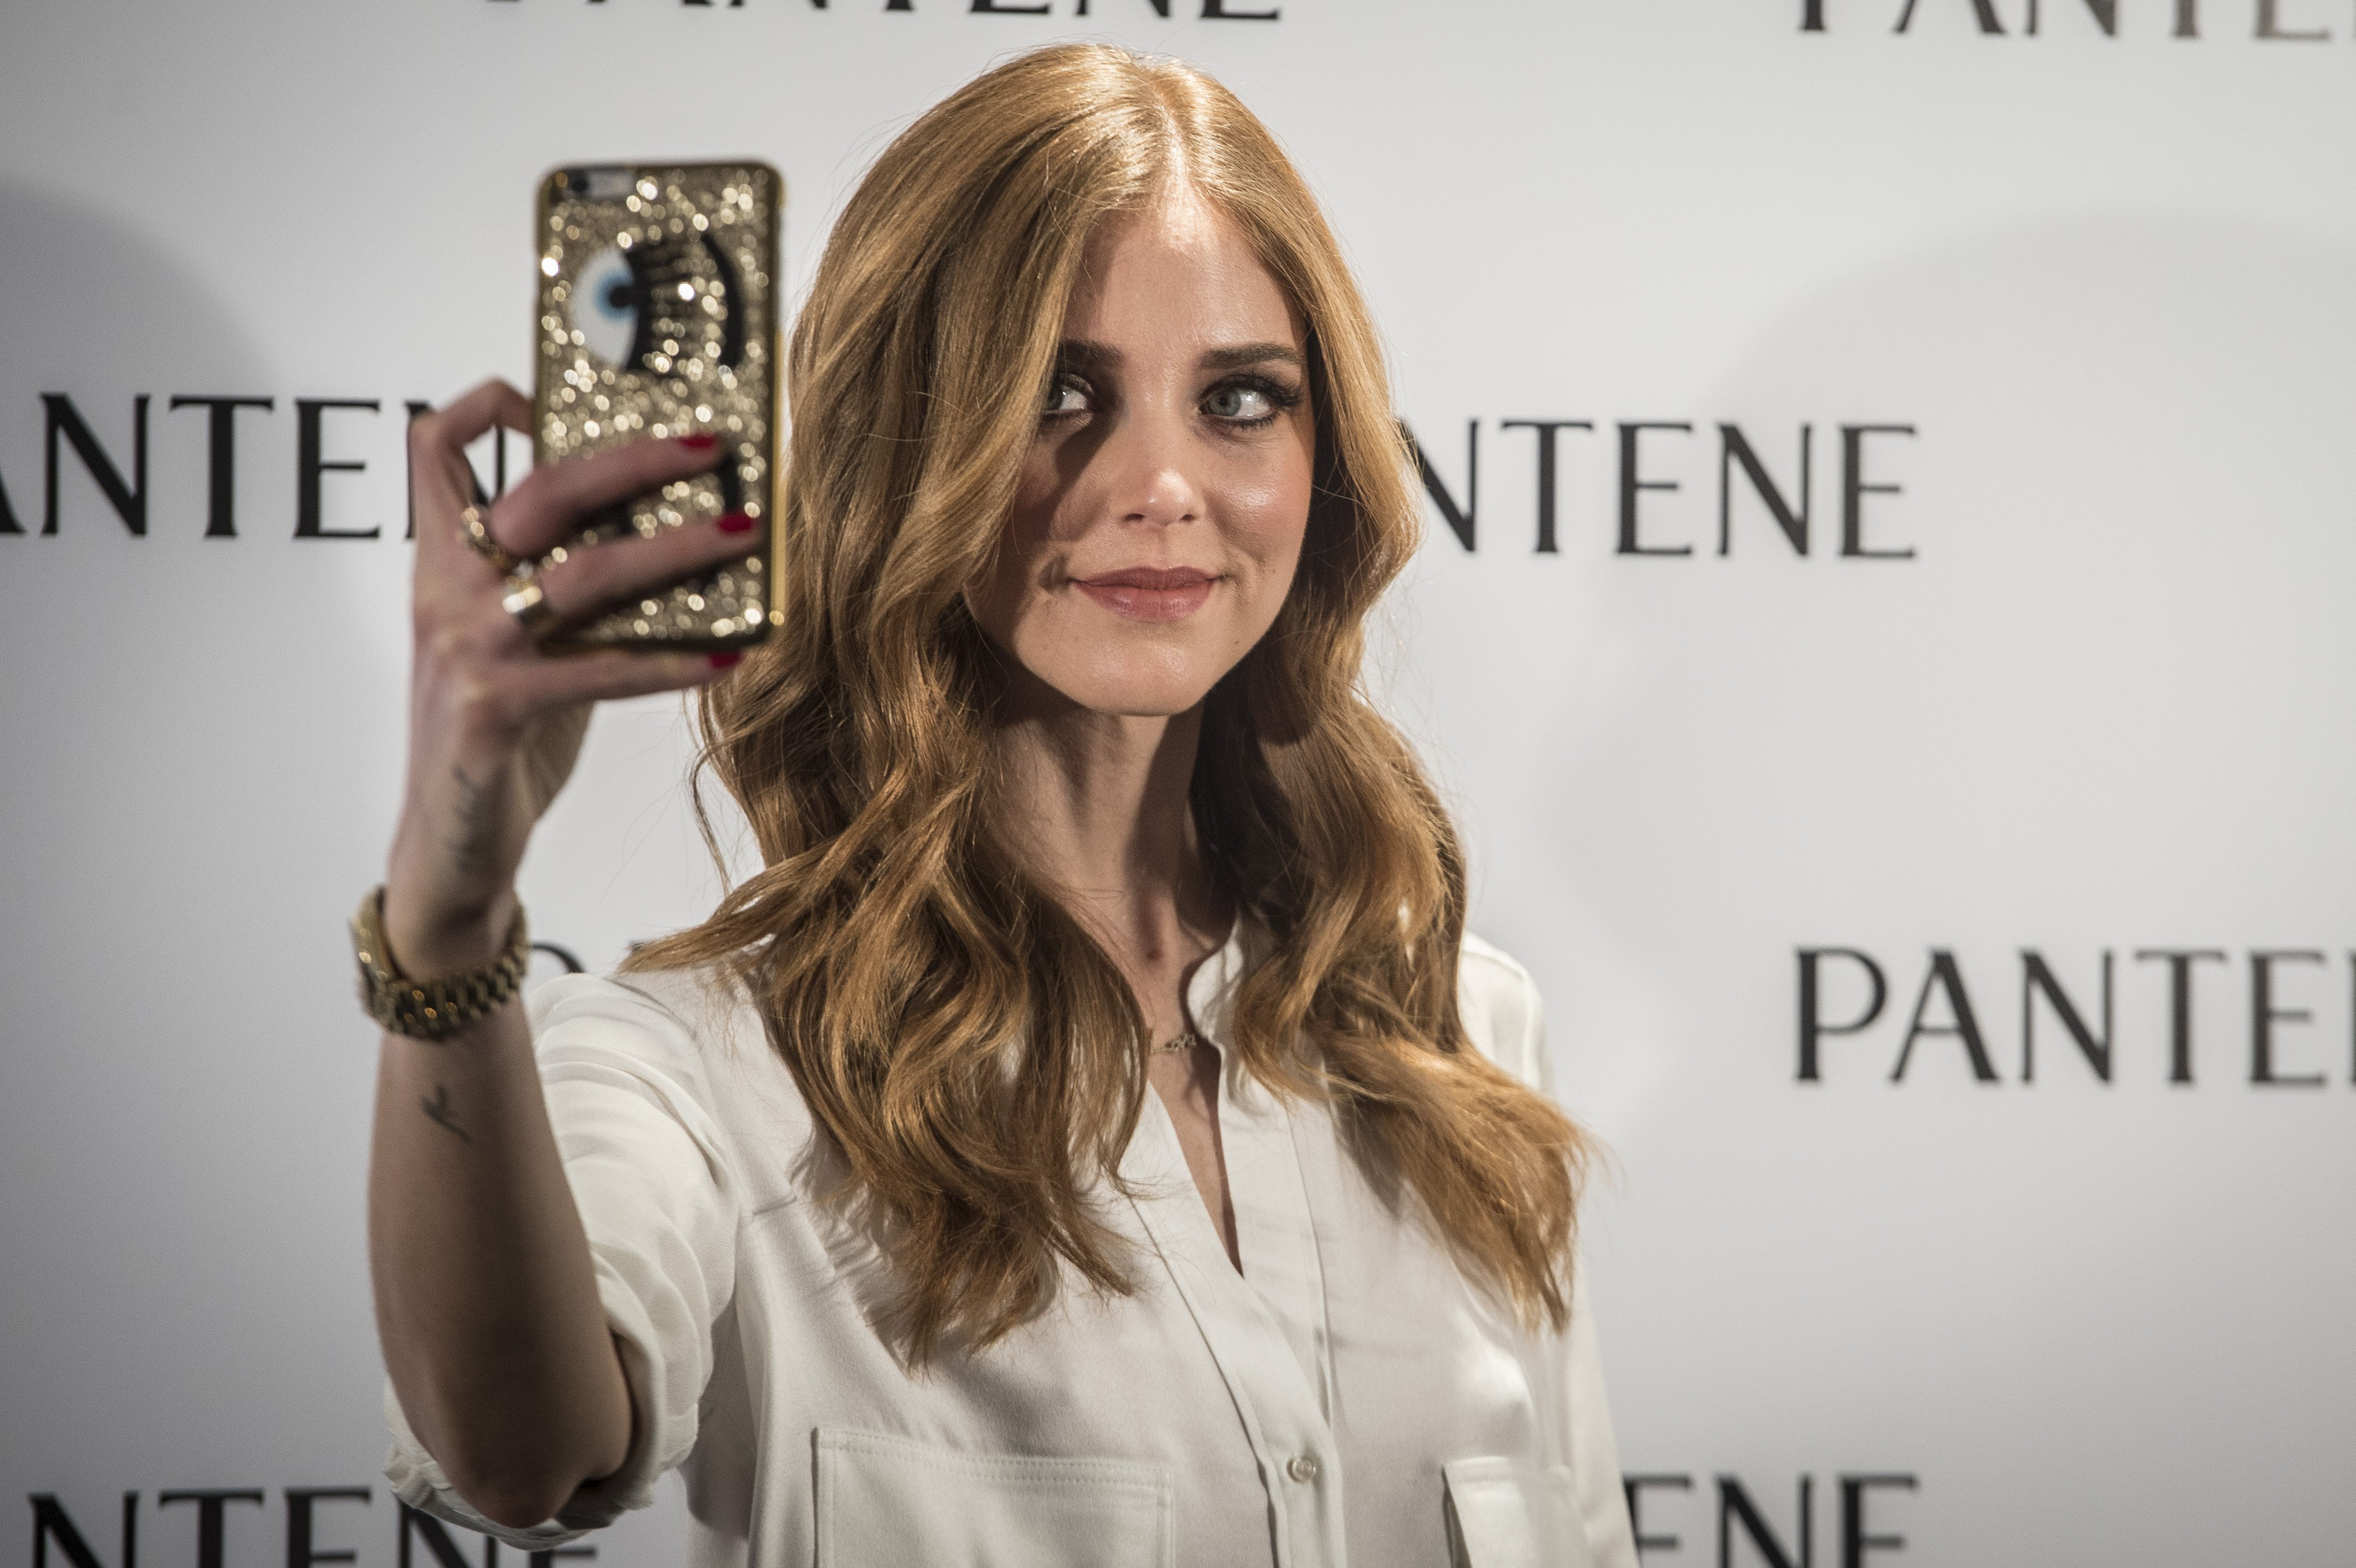 "Chiara Ferragni during act of firm "" Pantene "" in Madrid, on Thursday 28th January, 2016."